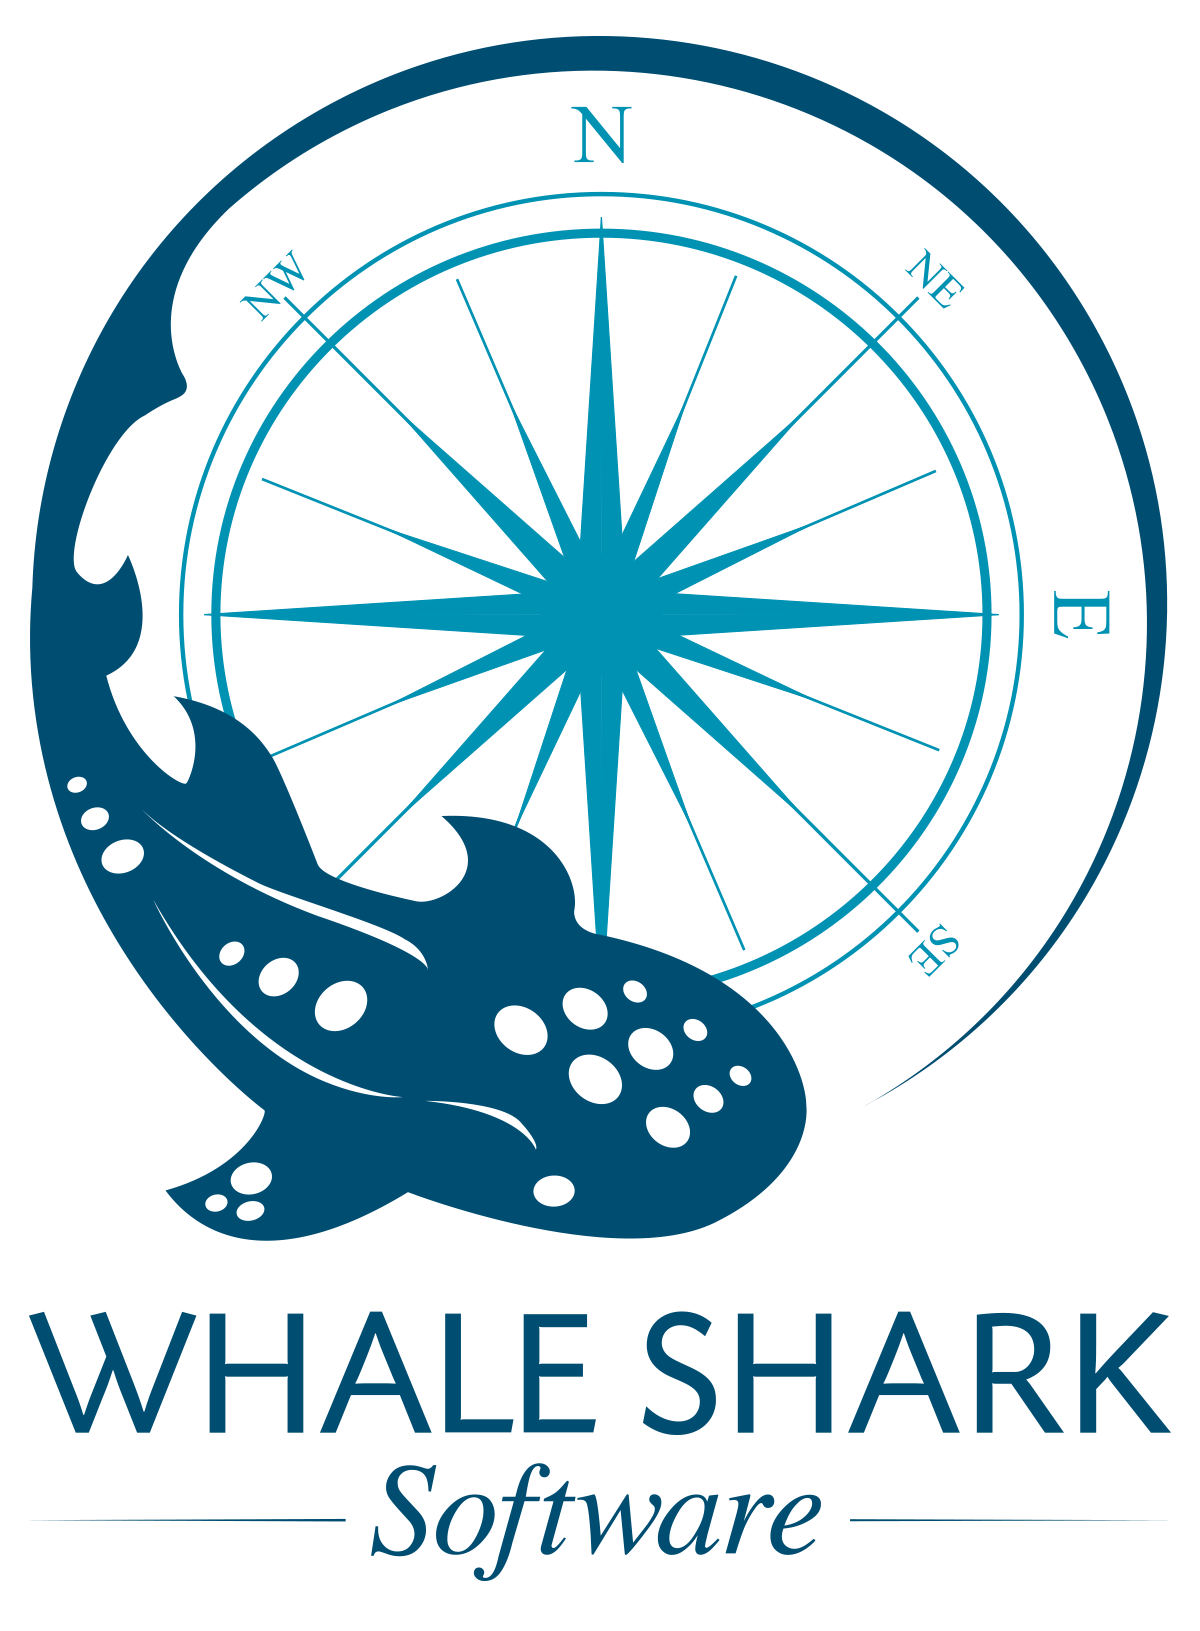 Whale Shark Software - Tools for Special Education